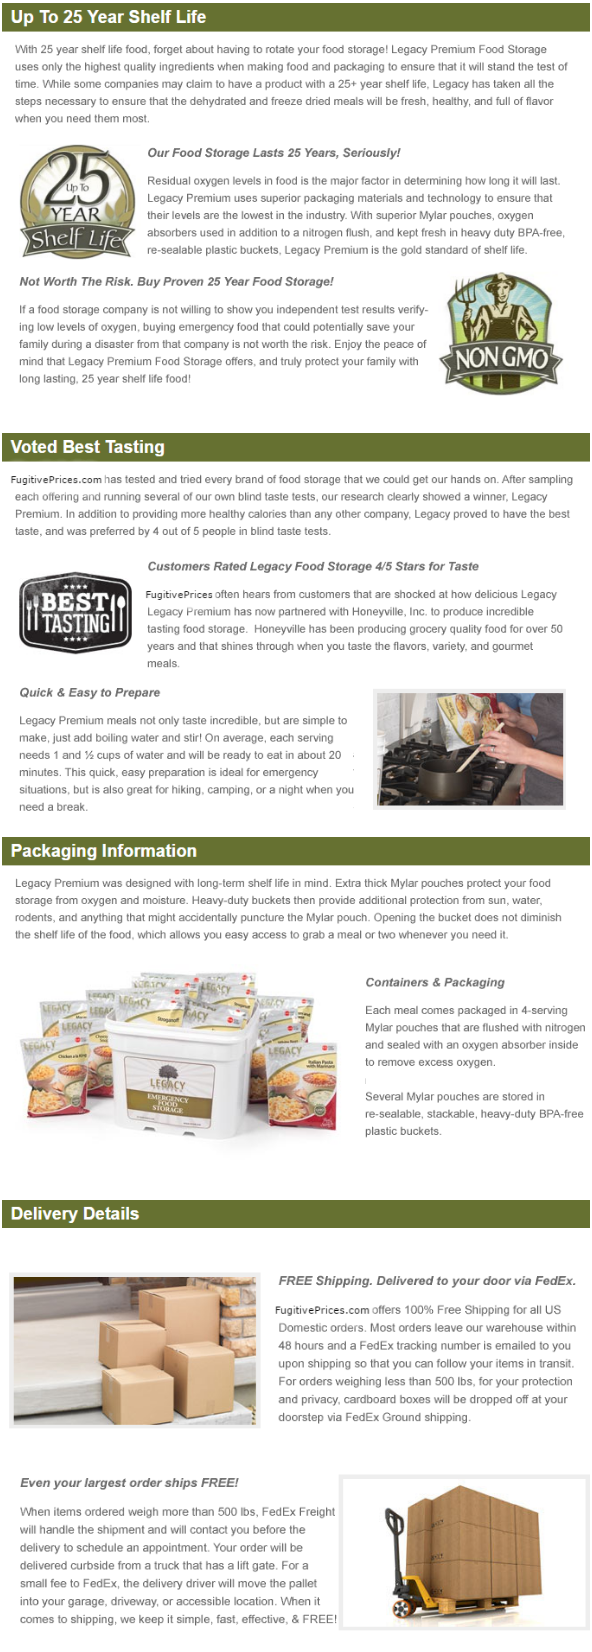 PRODUCT PACKAGING AND DELIVERY INFO